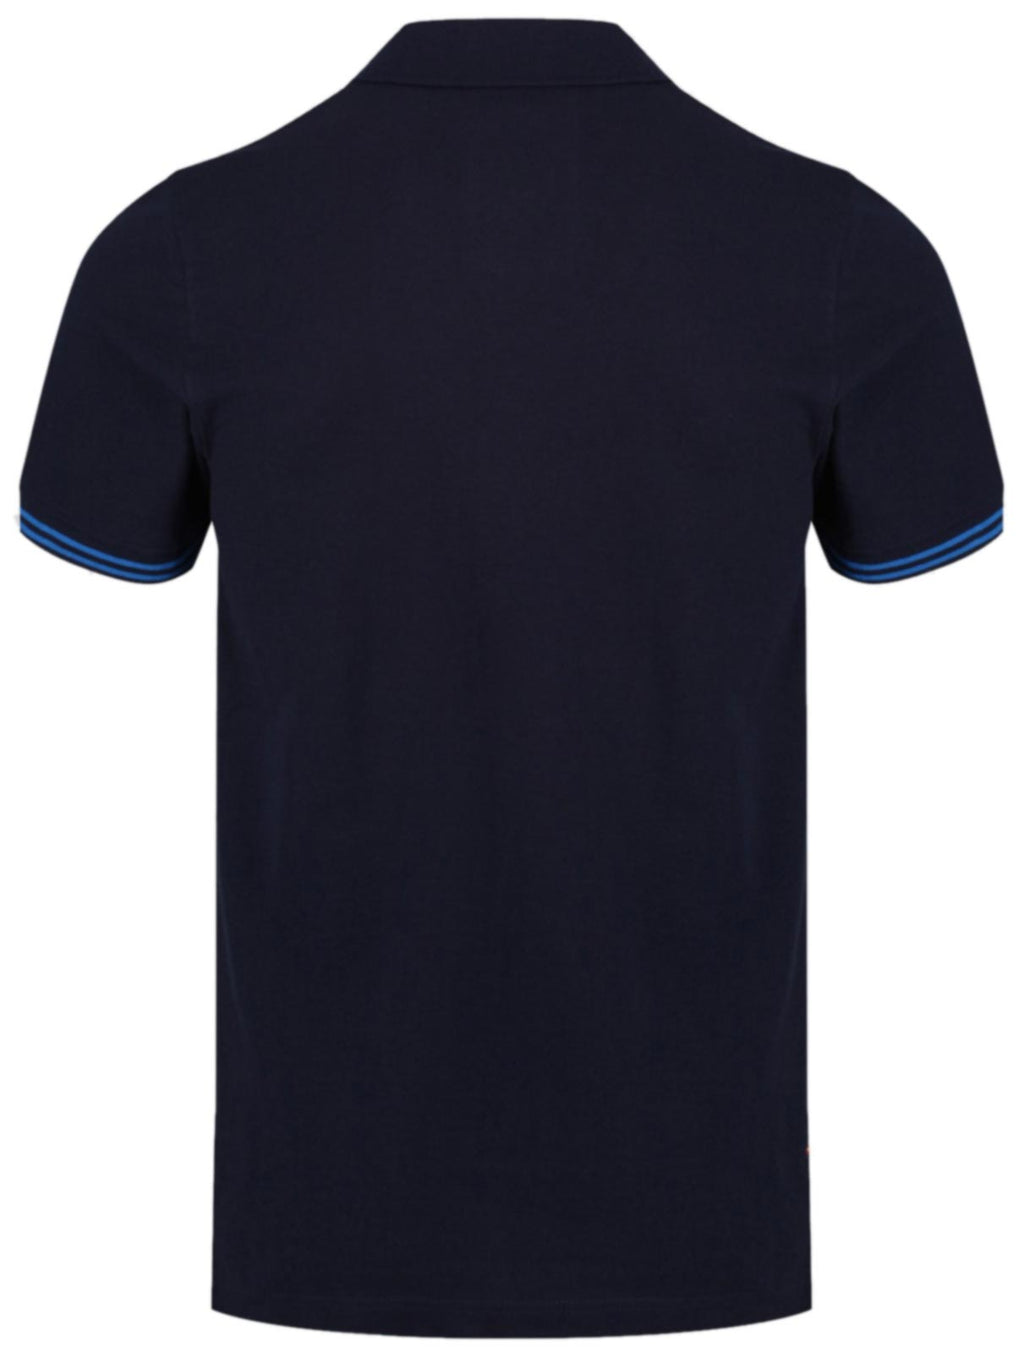 Luke 1977 New Mead Polo Shirt Navy